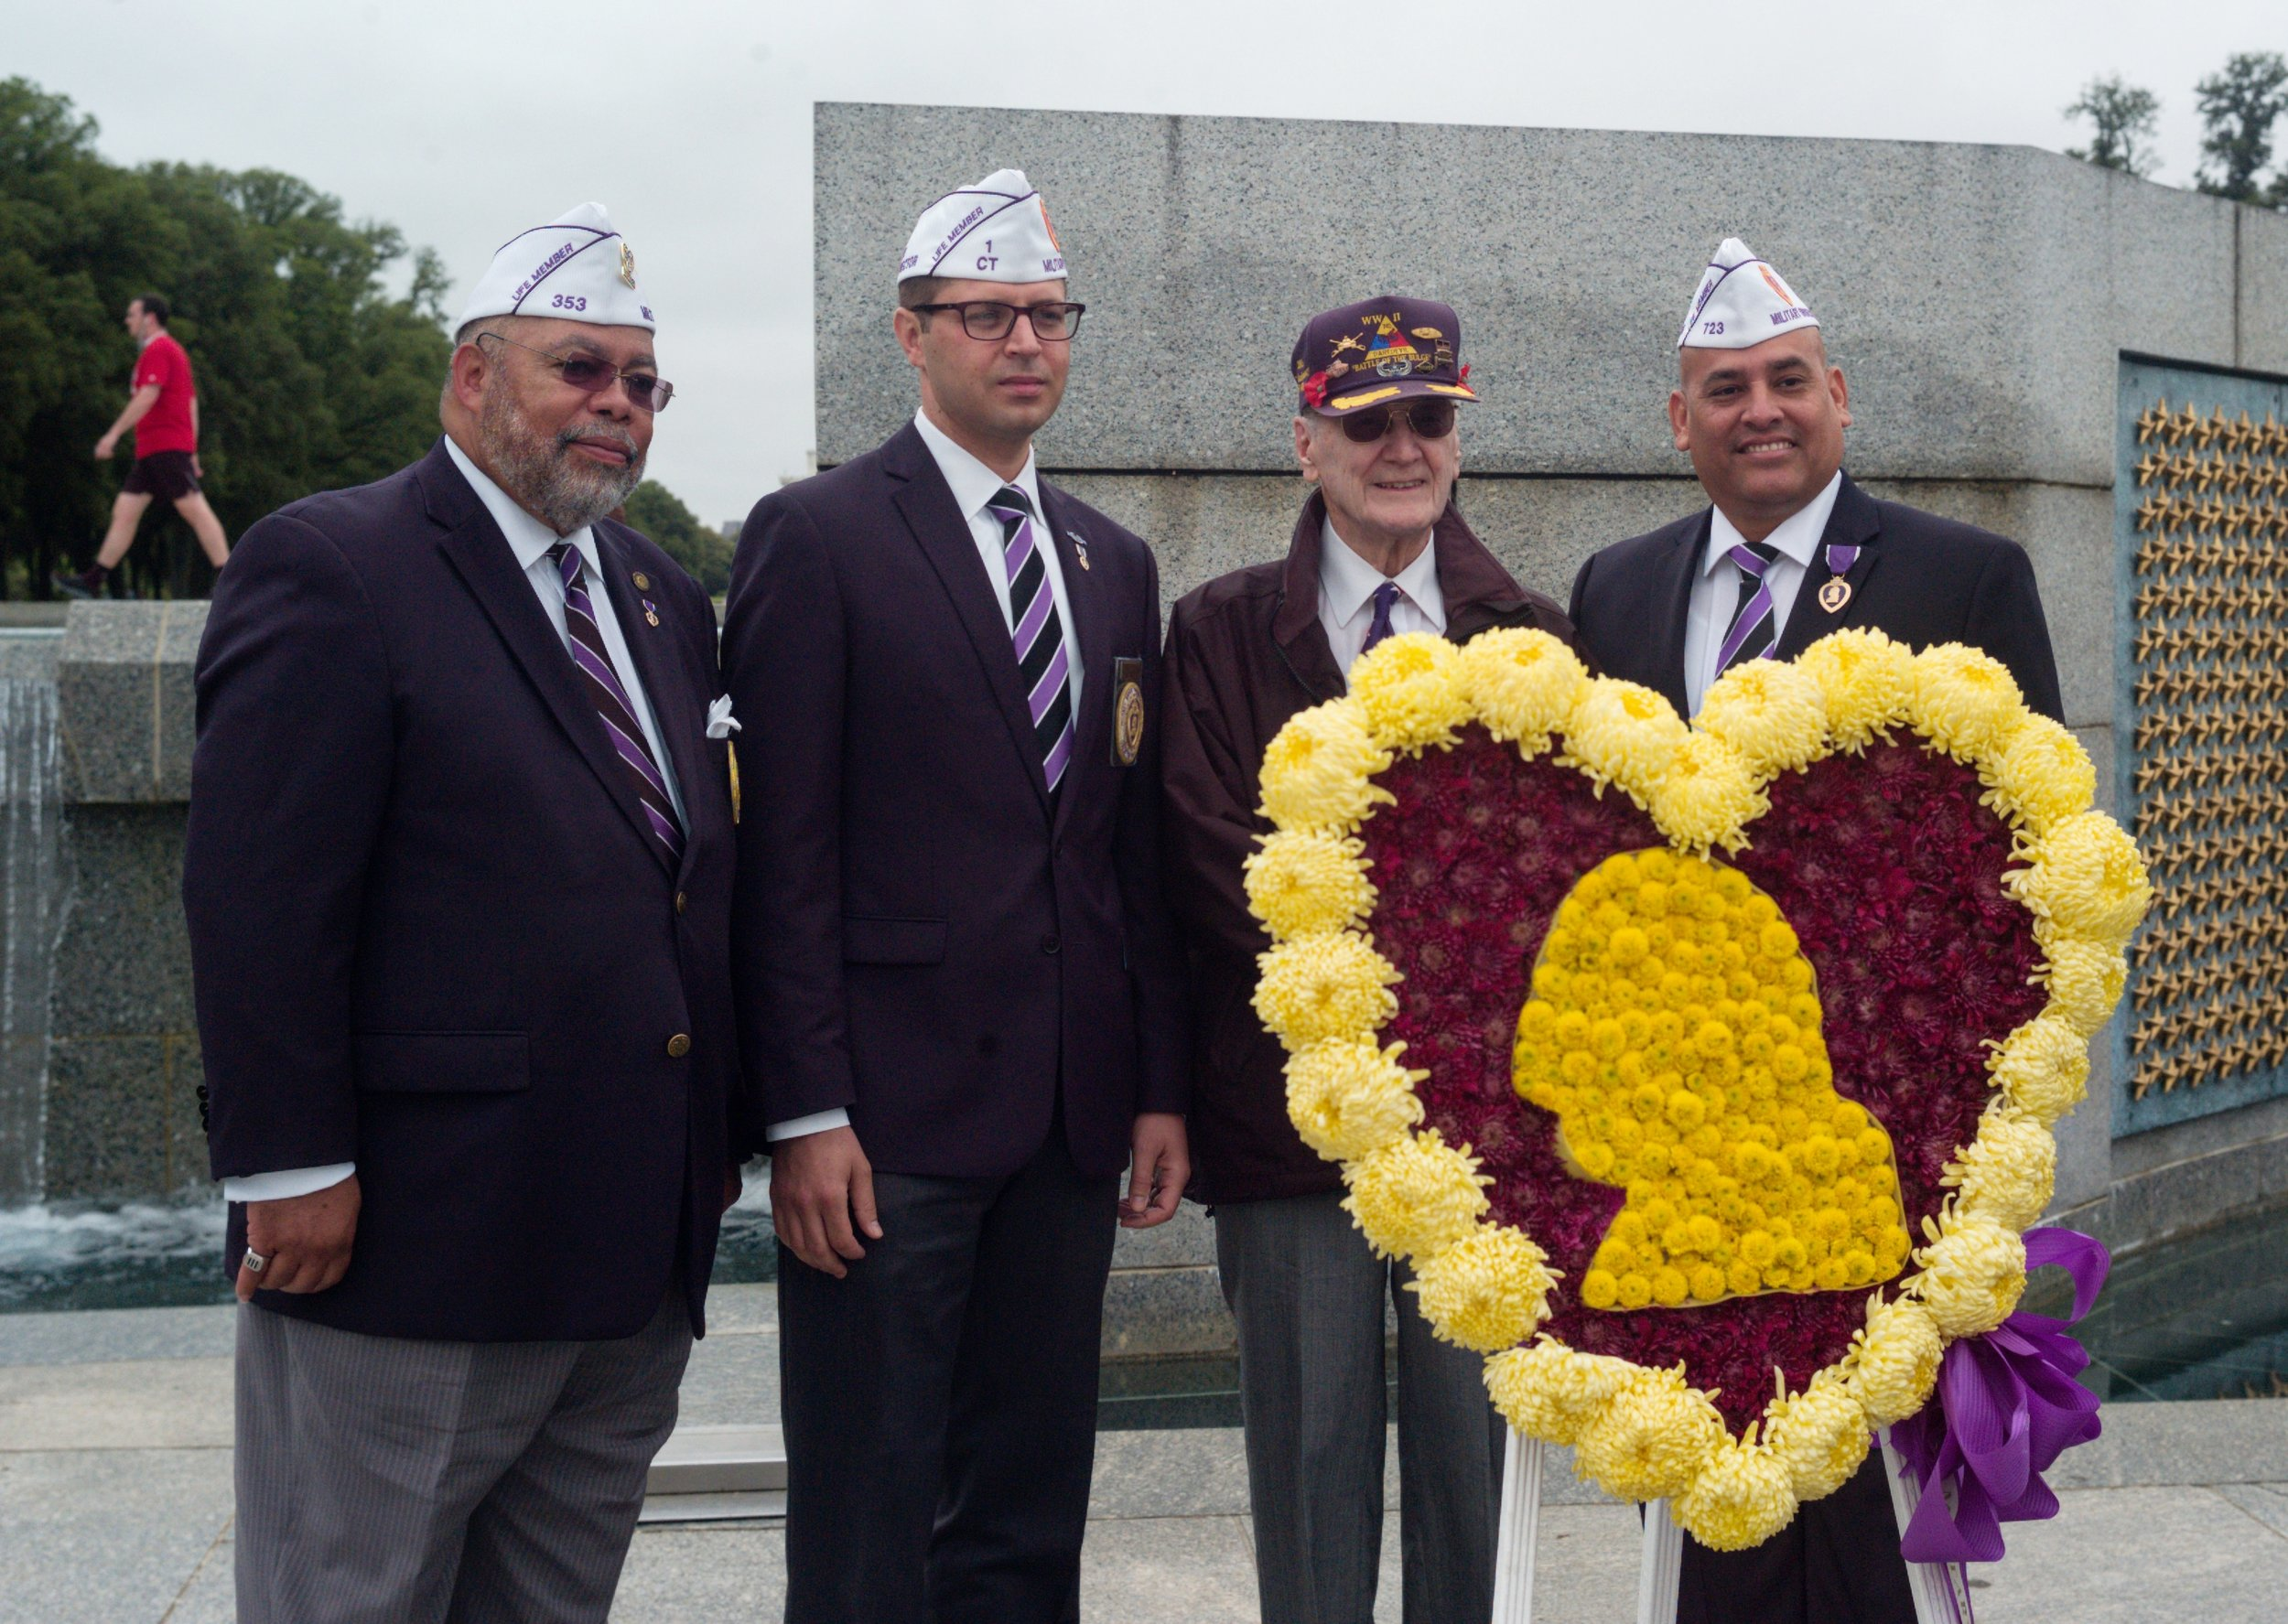 Representatives from the Military Order of the Purple Heart